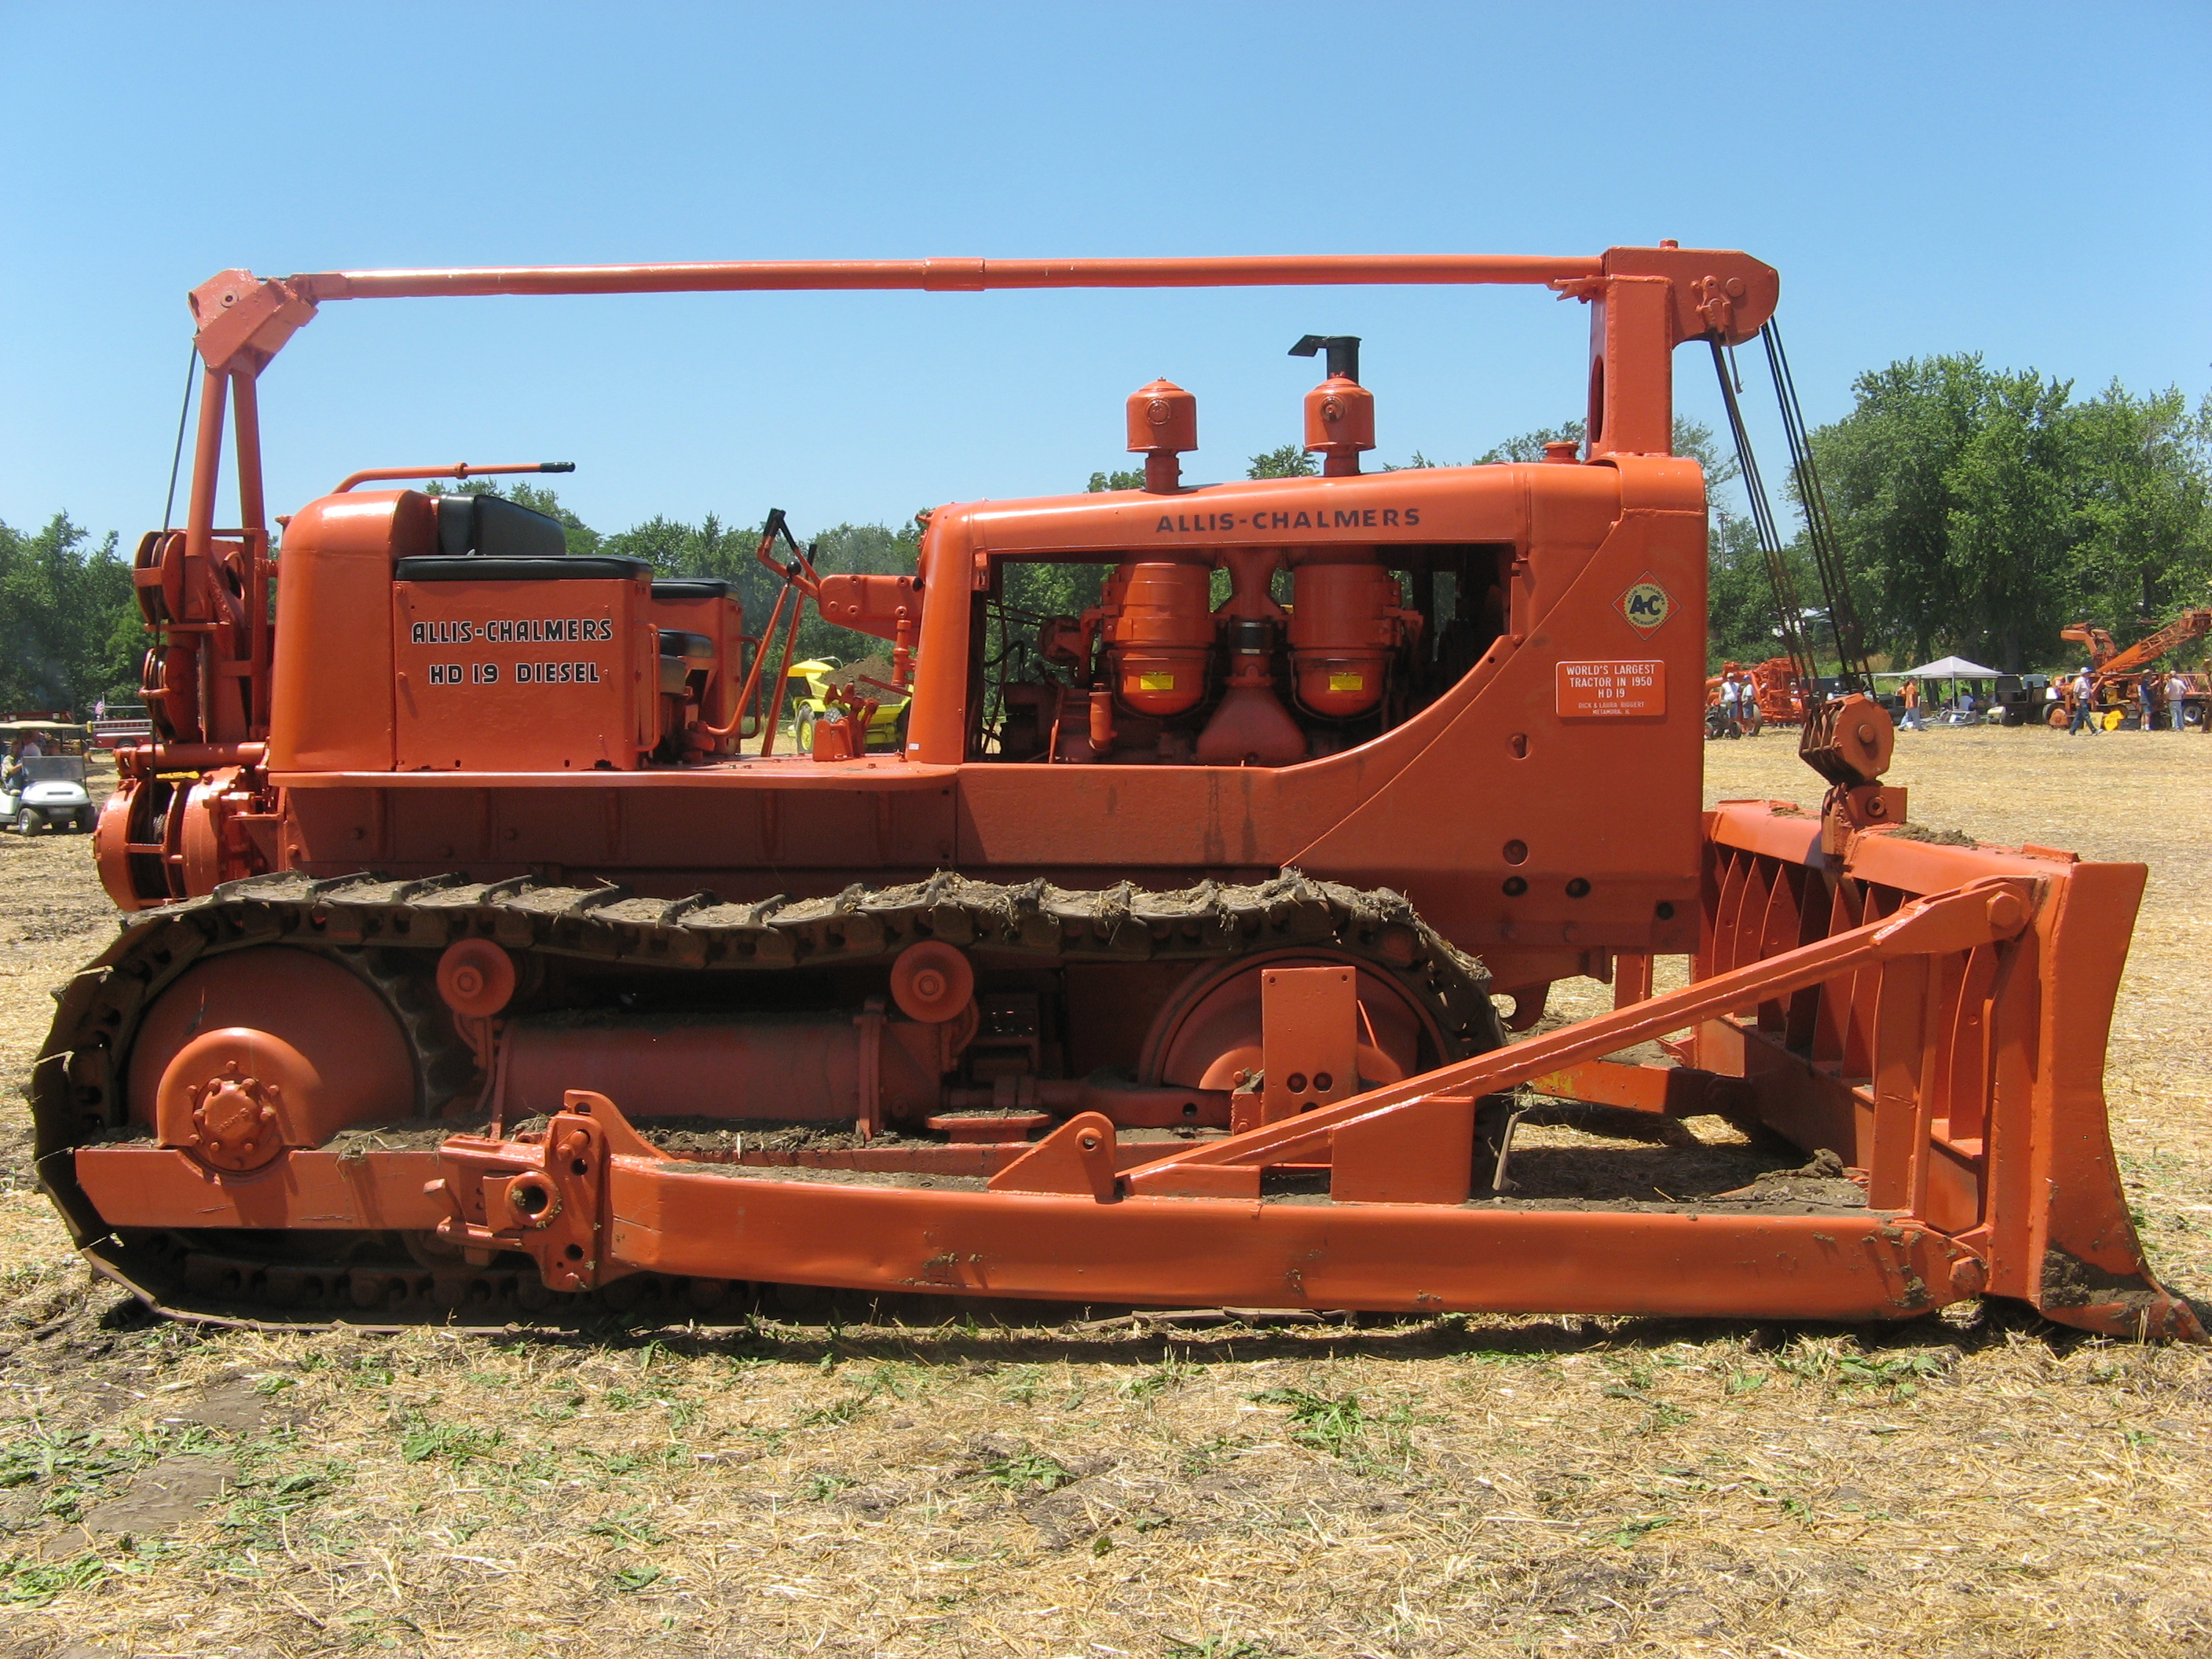 Allis-Chalmers Baker-cable-blade-on-allis-chalmers-hd-19-dozer-1950